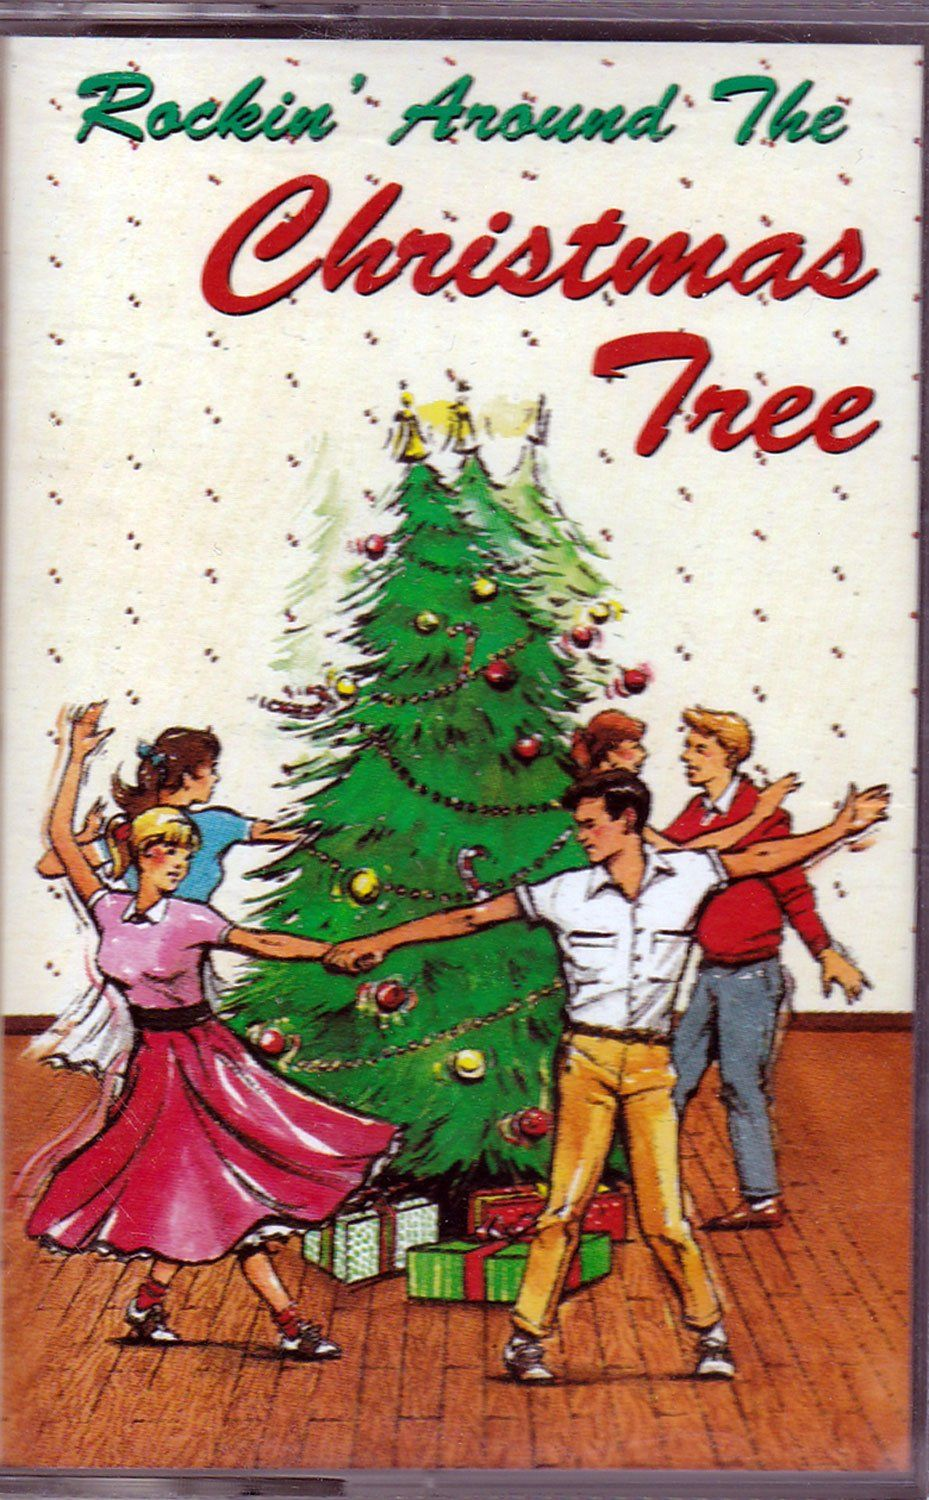 Cassette. Rockin' Around The Christmas Tree Days of